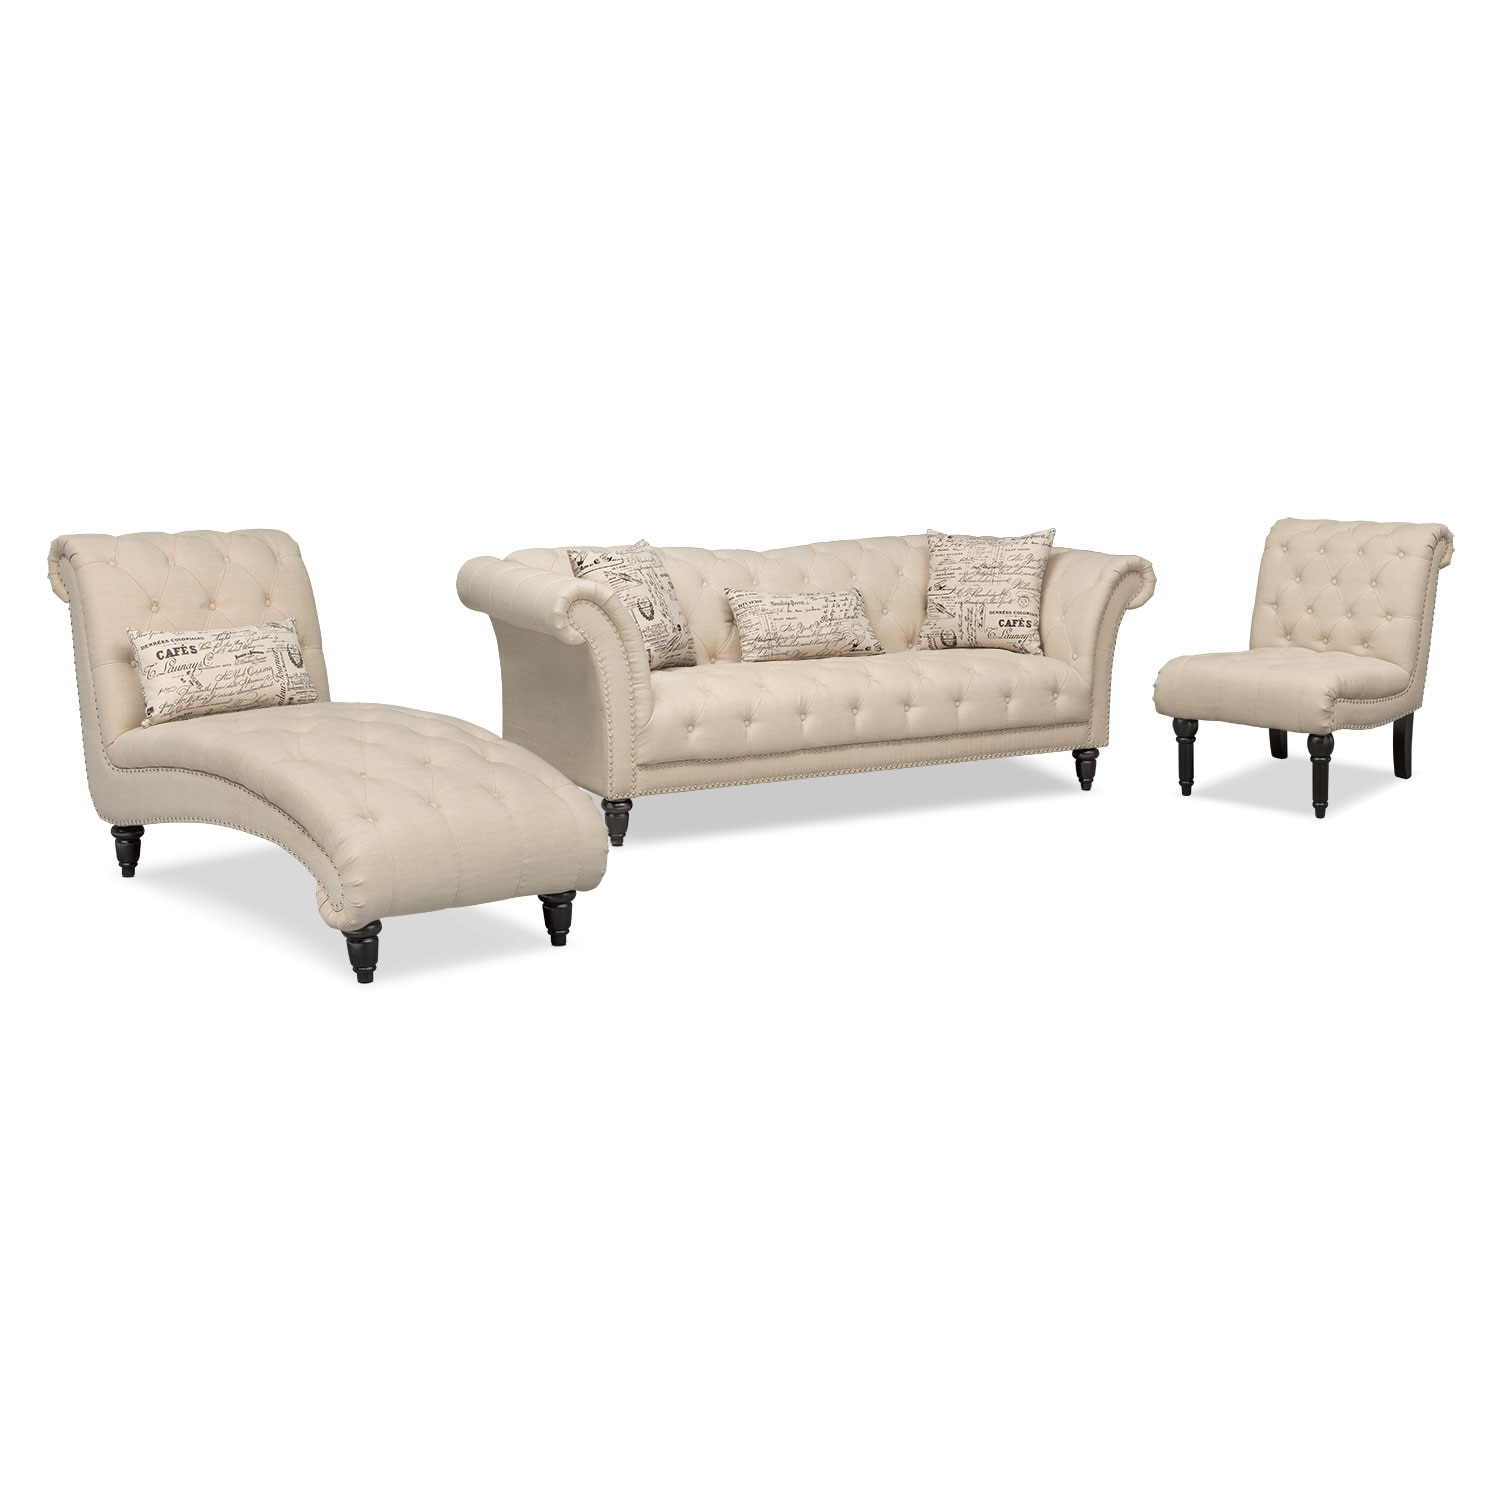 Marisol Sofa Chaise And Armless Chair Beige Value City Furniture